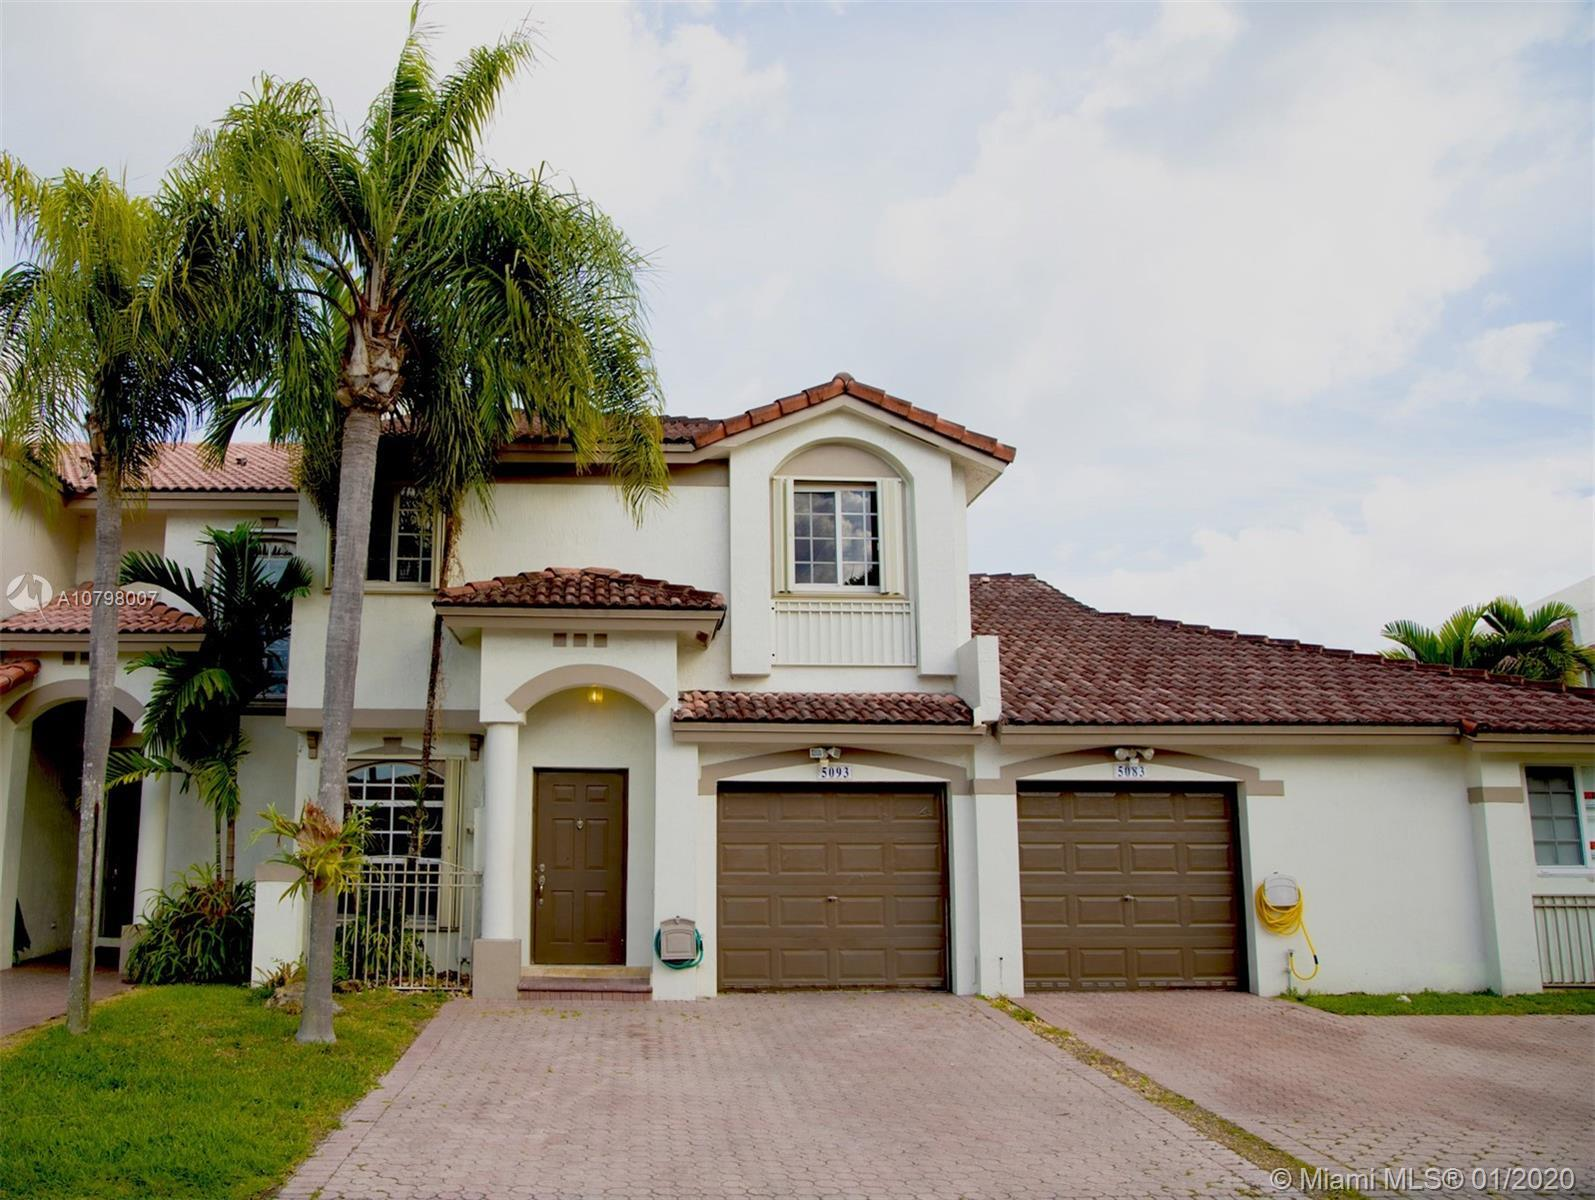 Beautiful and spacious 2-story  townhouse, ready to move in, located in the quiet community of Doral